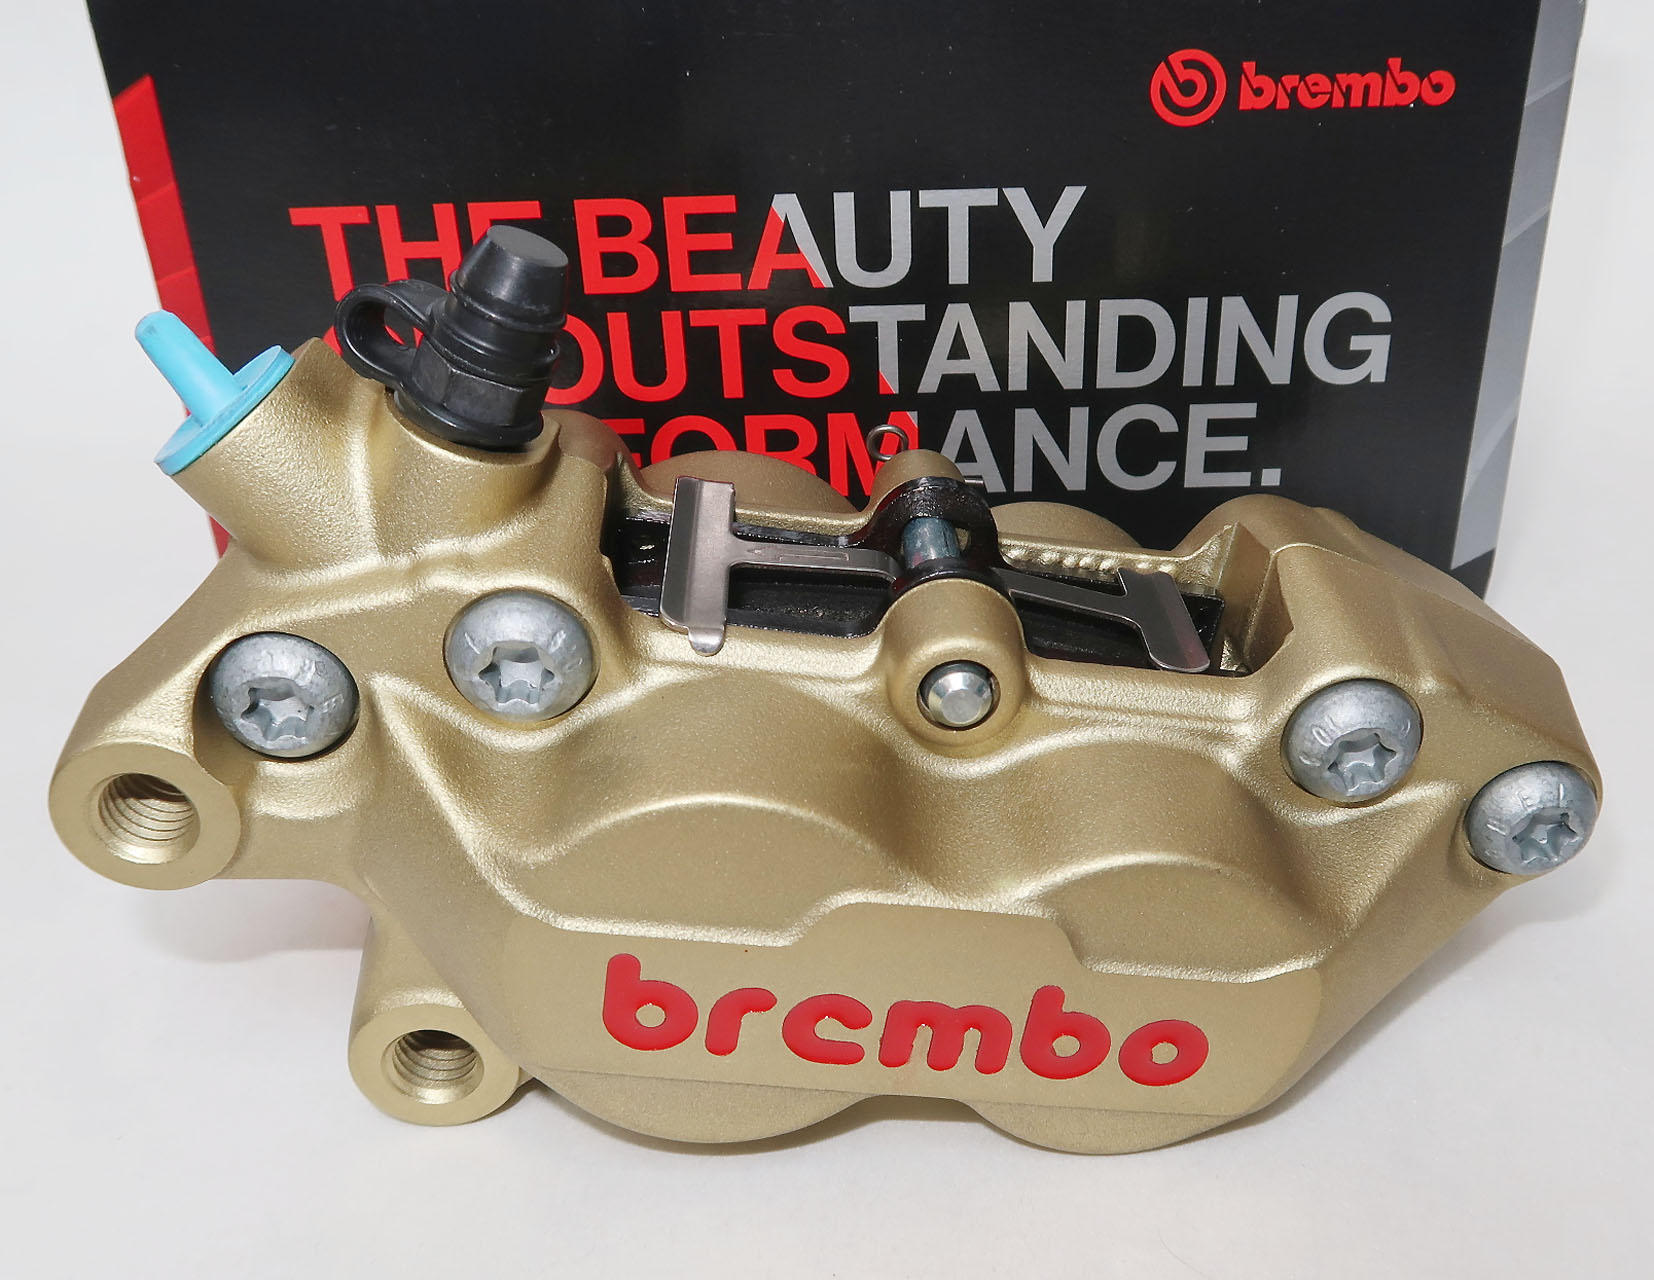 Brembo Caliper P4 30/34C, gold, left side, Brembo Logo red